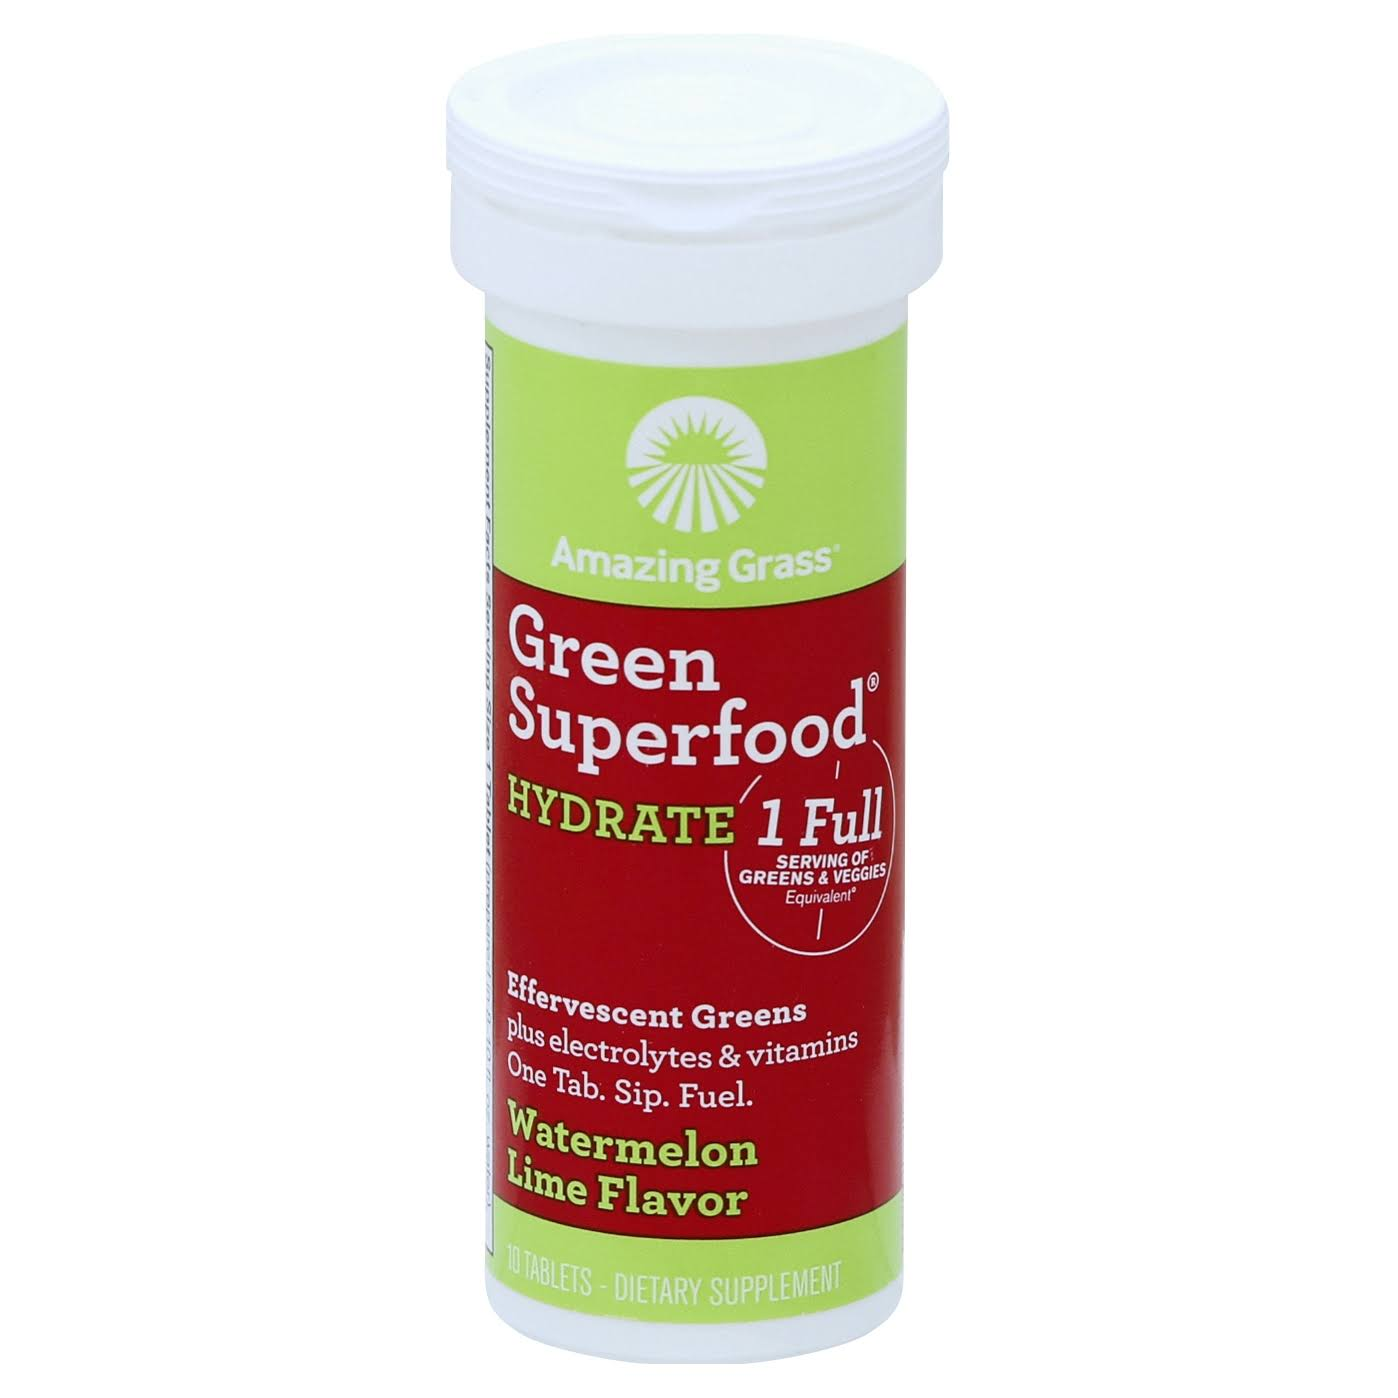 Amazing Grass Green Superfood Hydrate Effervescent Greens Vitamins - Watermelon Lime Flavor